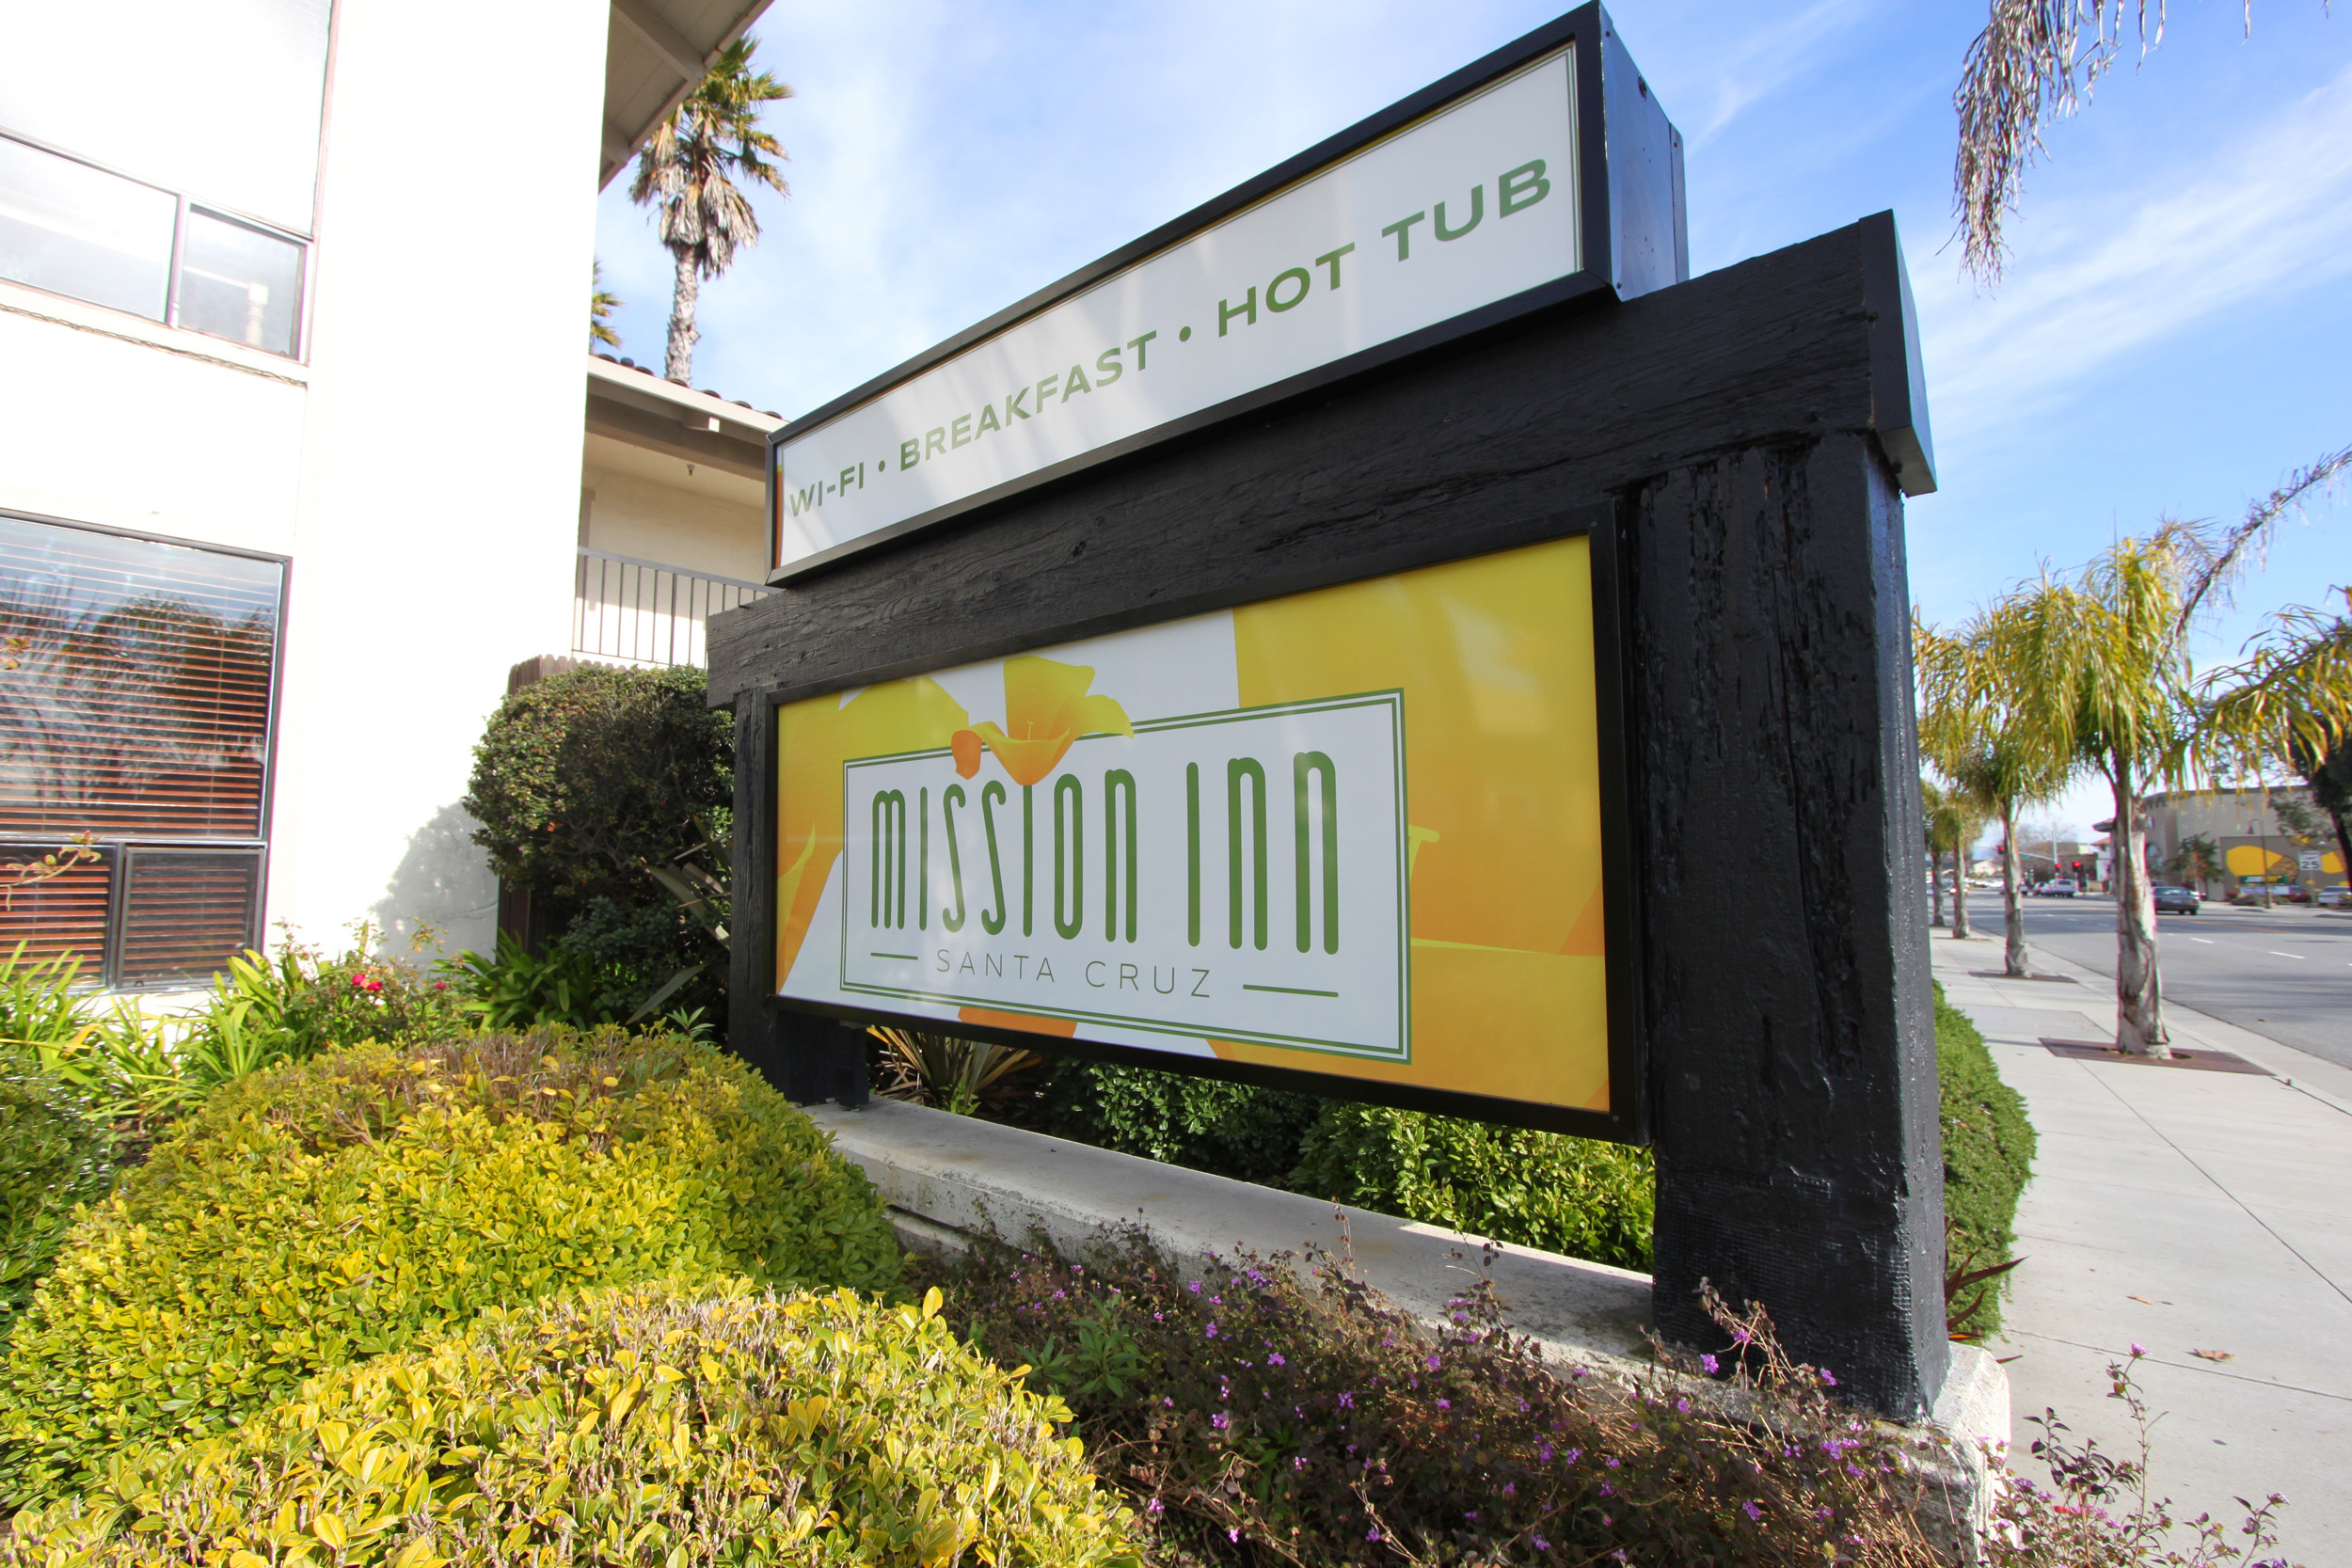 Mission Inn - front sign